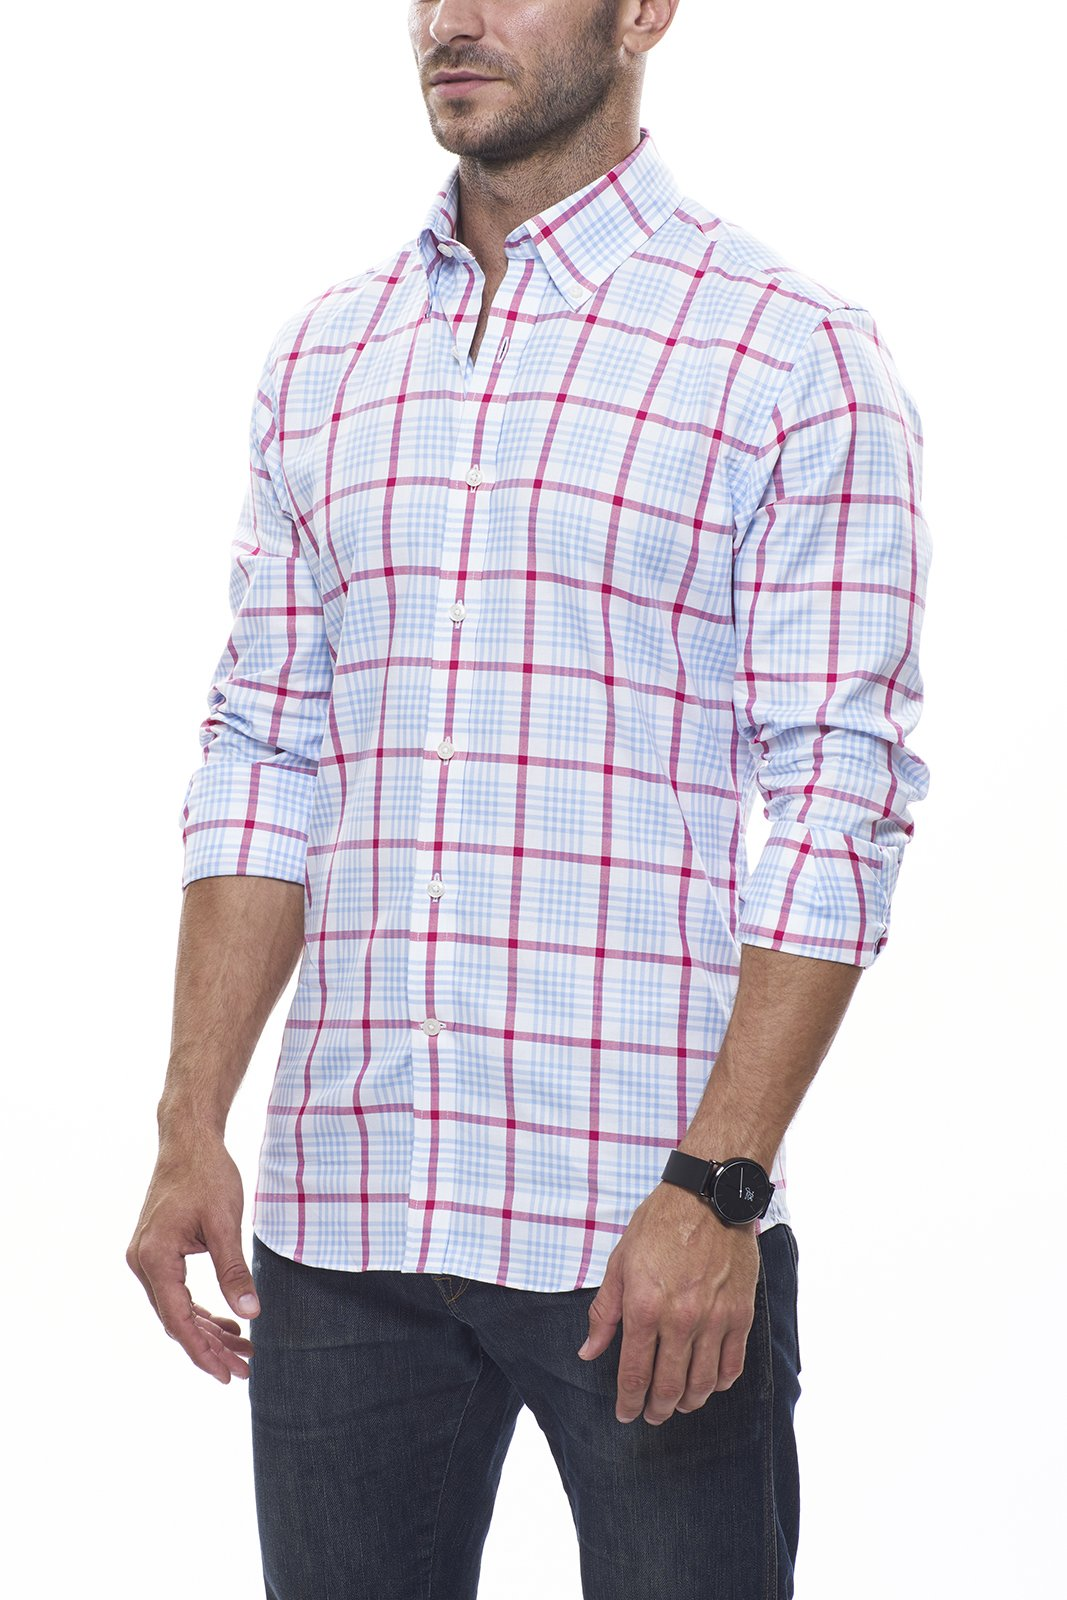 Red and Light Blue Oversized Plaid Oxford: Semi-Spread Collar, French Cuff